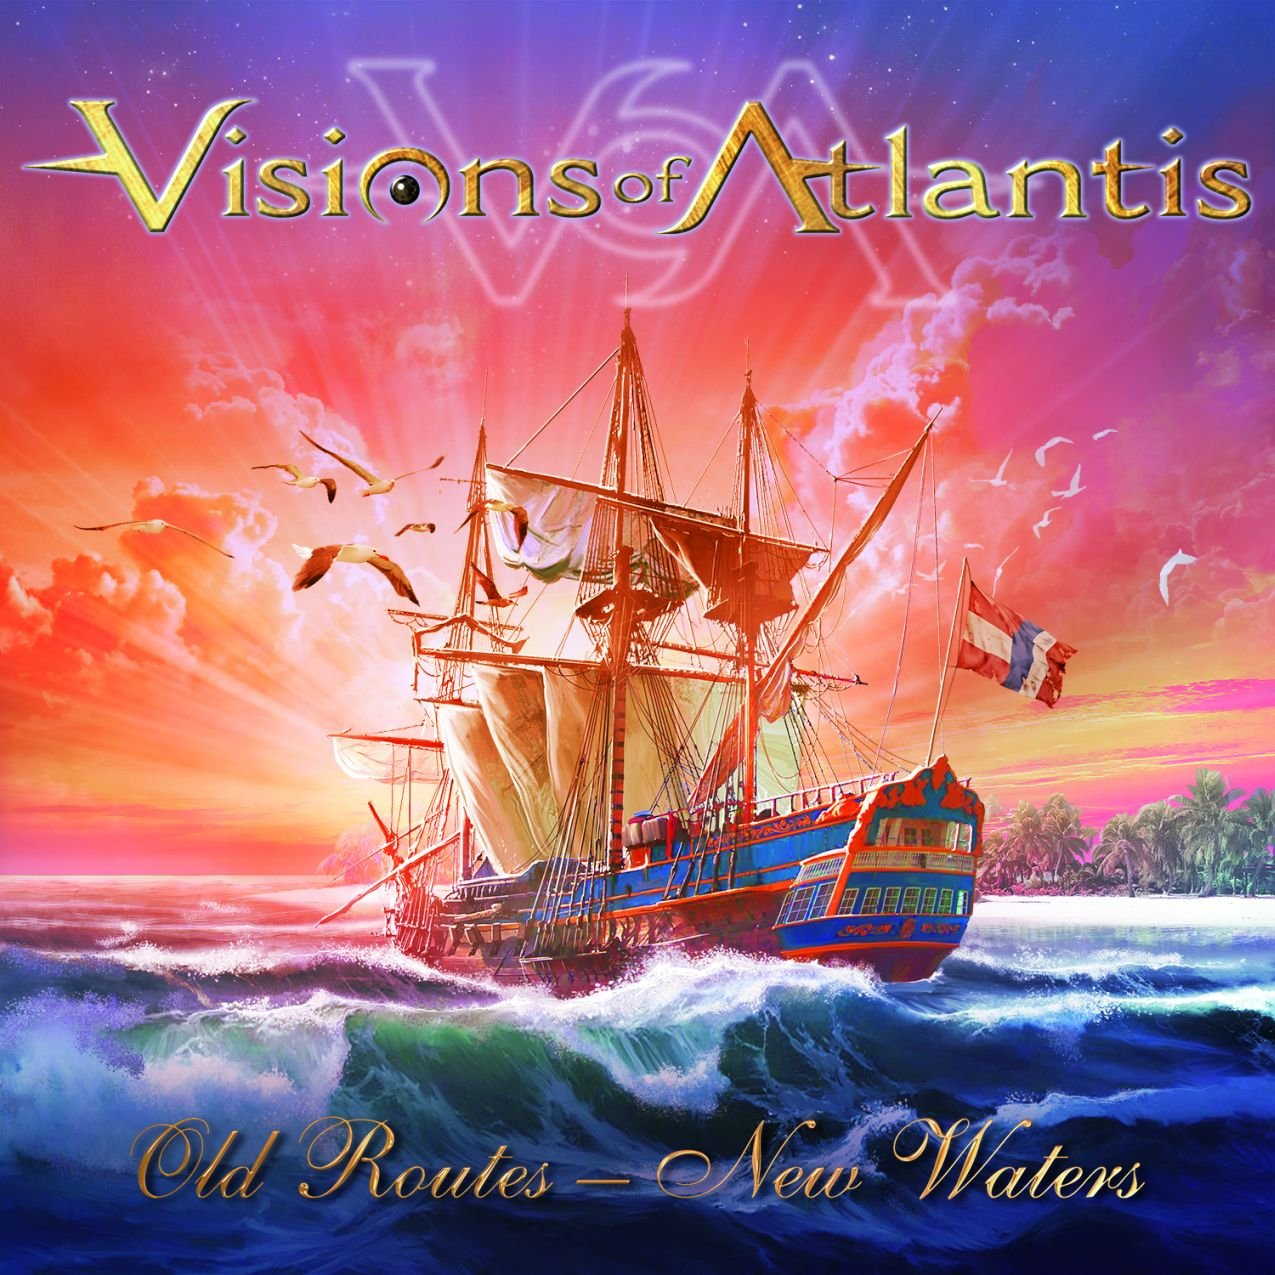 Vision of Atlantis_Old Routes_New Waves